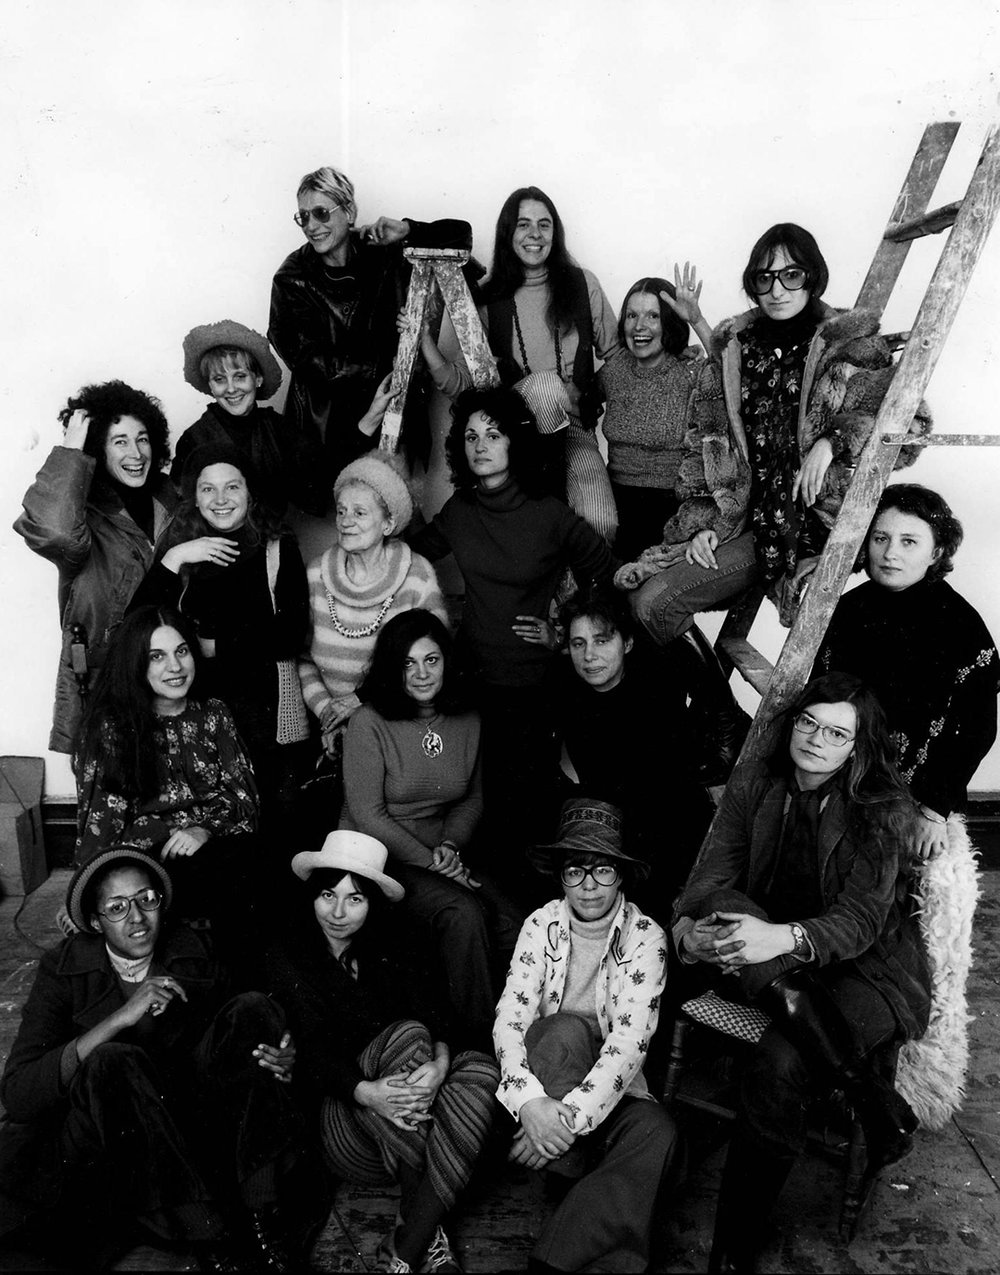 A.I.R Gallery founding members in Daria Dorosh's loft, 370 Broadway, 1974 Pictured from left to right, bottom to top: Howardena Pindell, Daria Dorosh, Maude Boltz, Rosemary Mayer, Mary Grigoriadis, Agnes Denes, Louise Kramer, Loretta Dunkelman, Barbara Zucker, Patsy Norvell, Sari Dienes, Judith Bernstein, Laurace James, Nancy Spero, Pat Lasch, Anne Healy, Dotty Attie.    Photo credit: David Attie